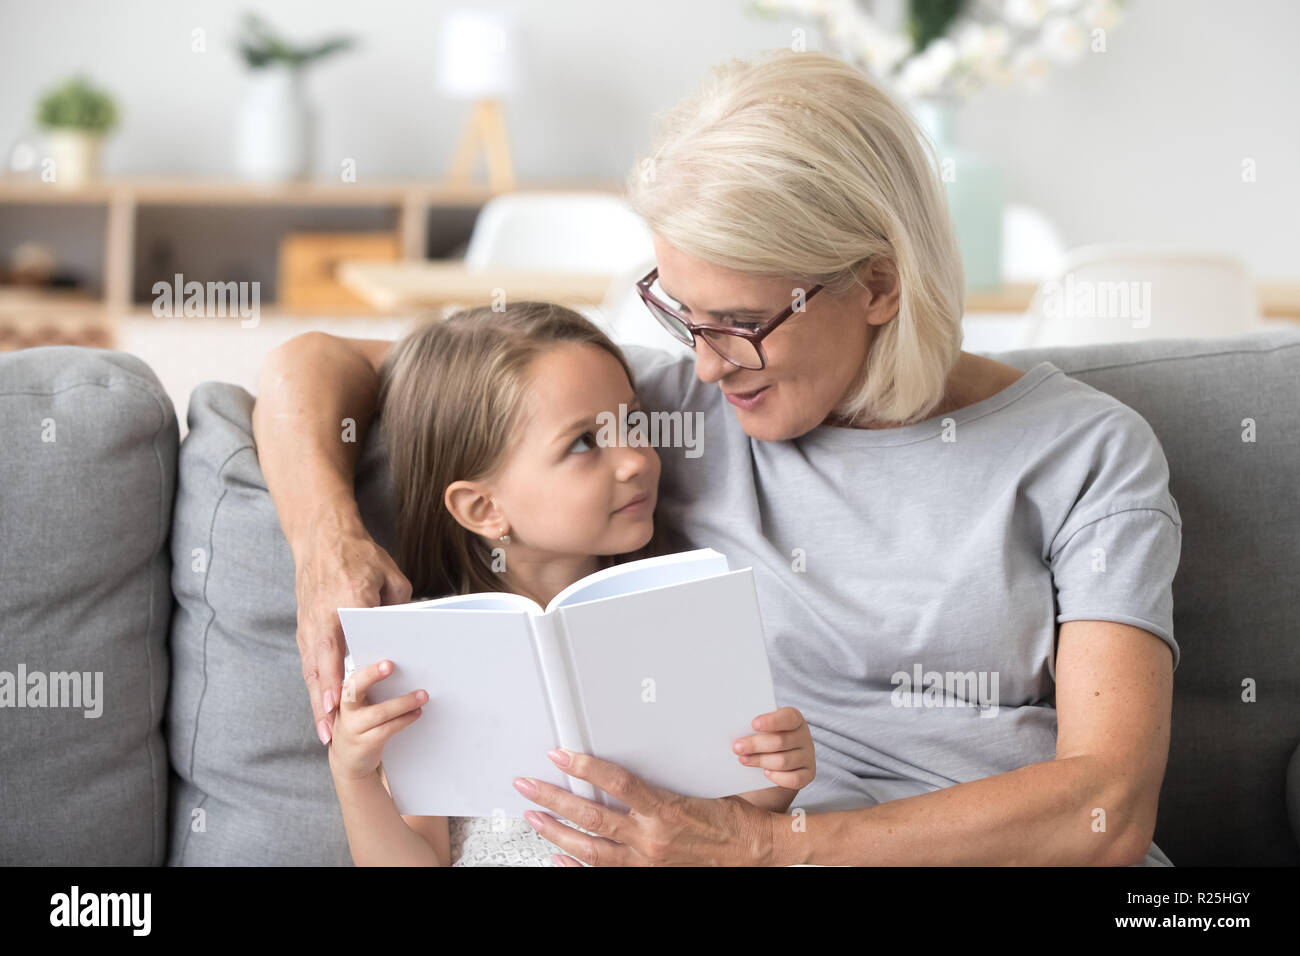 Child Help Grandma Stock Photos Amp Child Help Grandma Stock Images